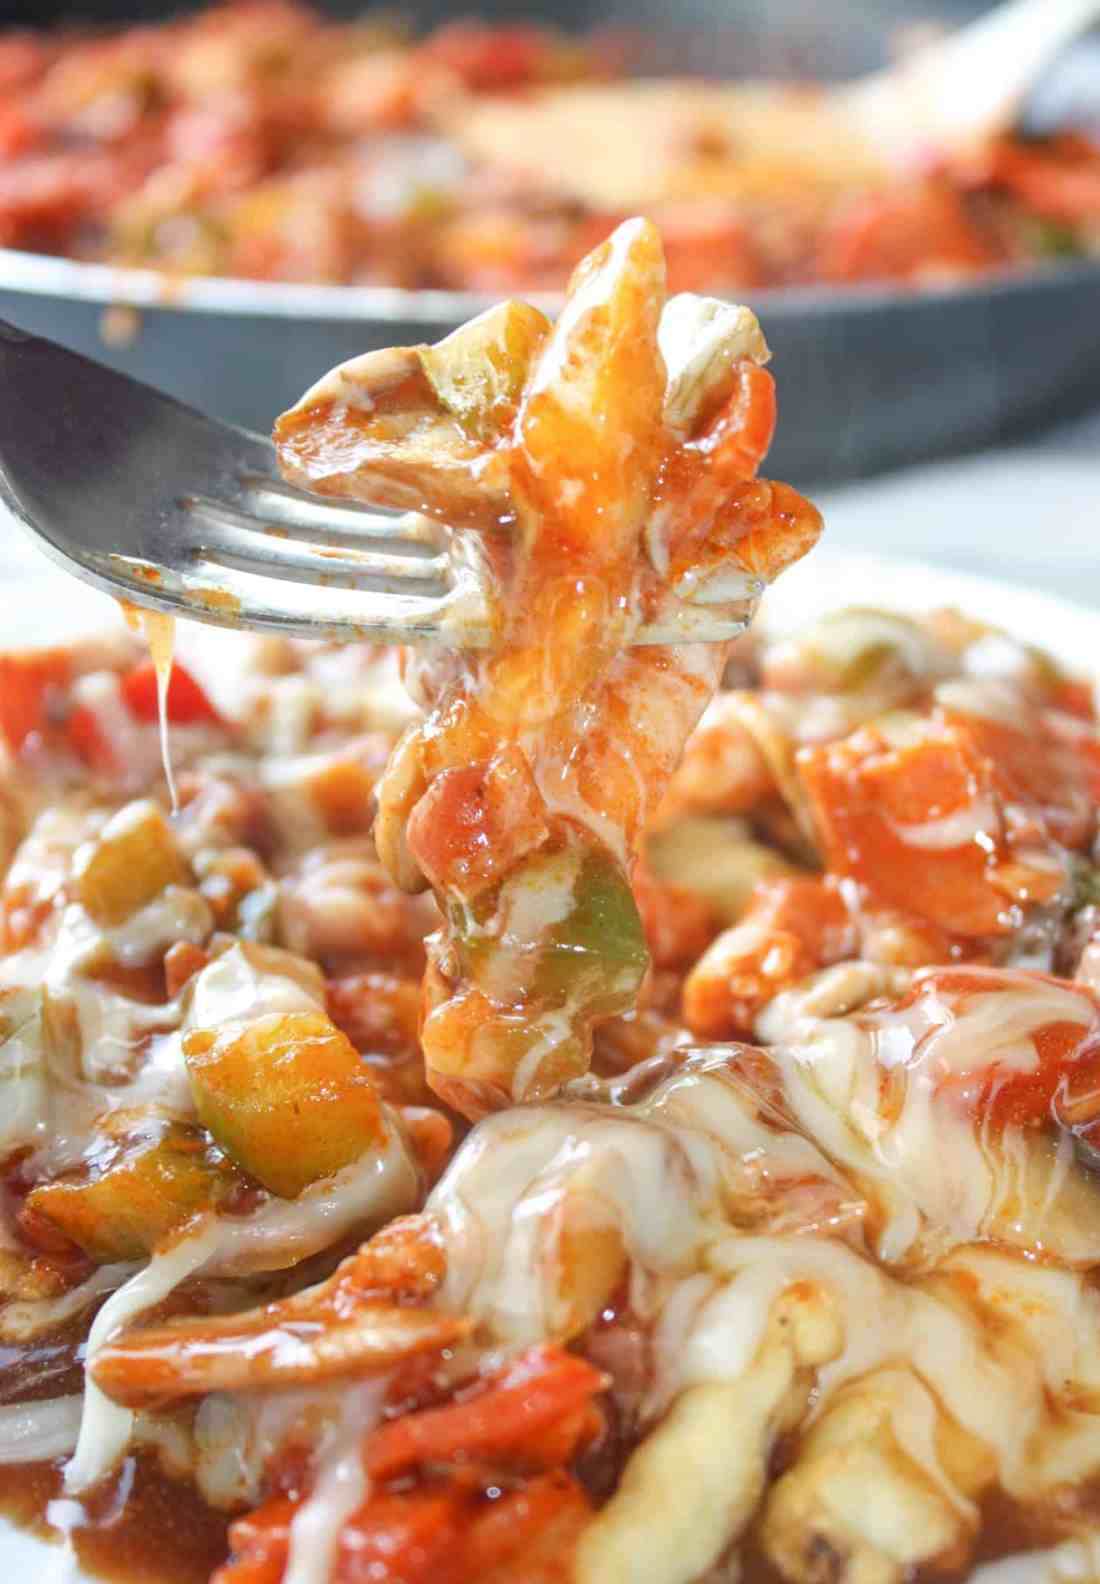 Loaded with pizza toppings, topped with shredded mozzarella and then smothered in gravy, Pizza Fries provide a tasty alternative to traditional Poutine.